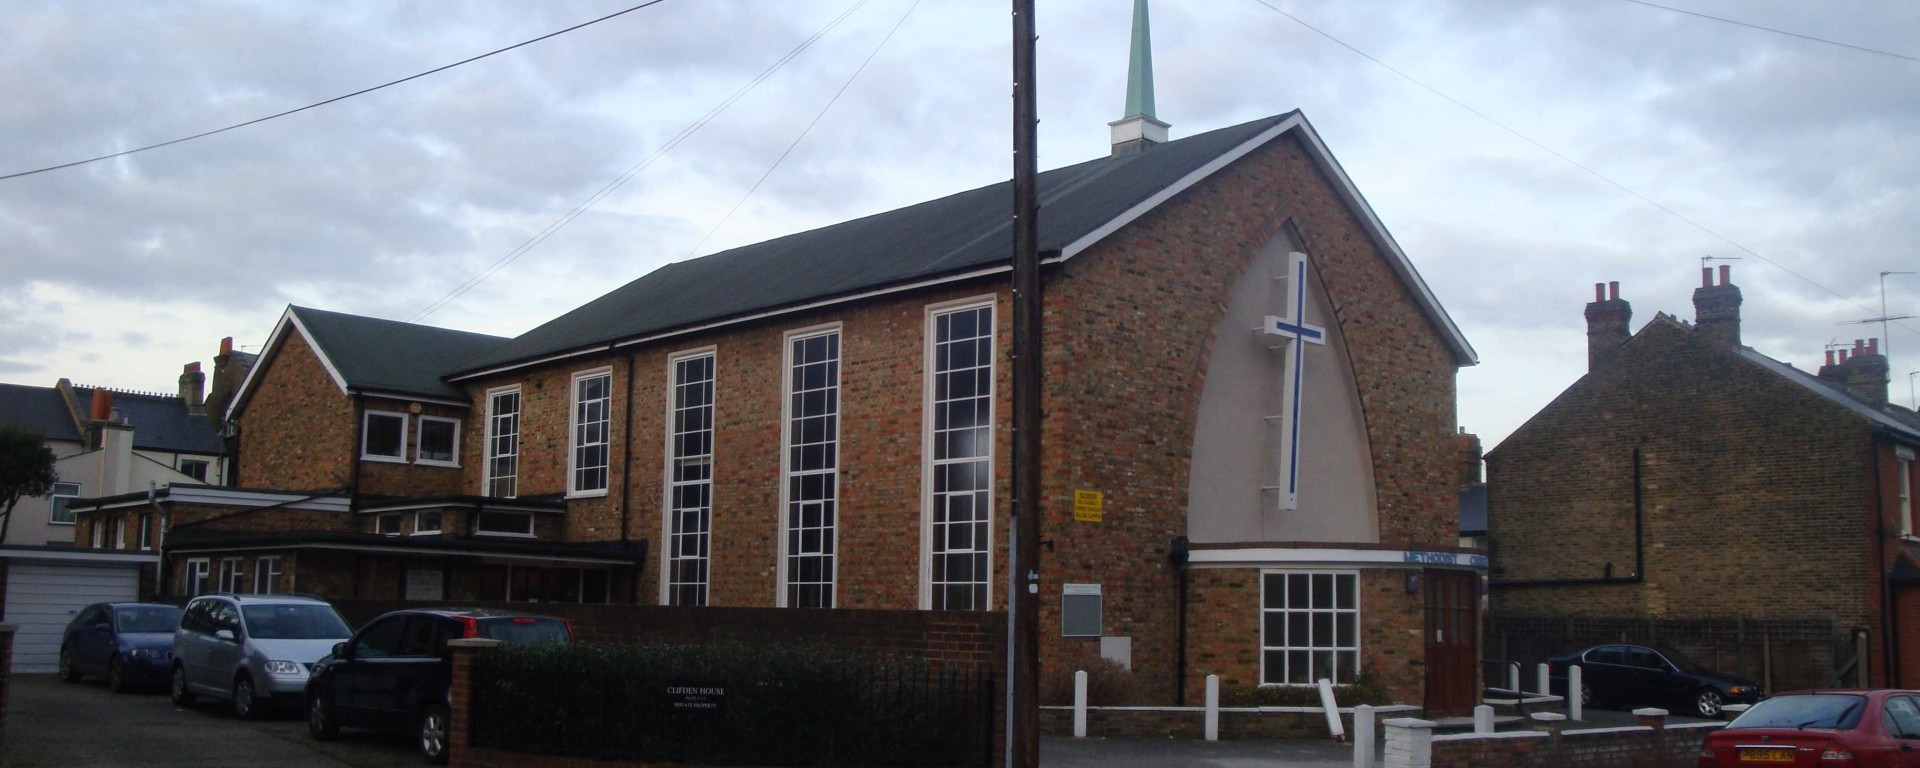 Methodist Church